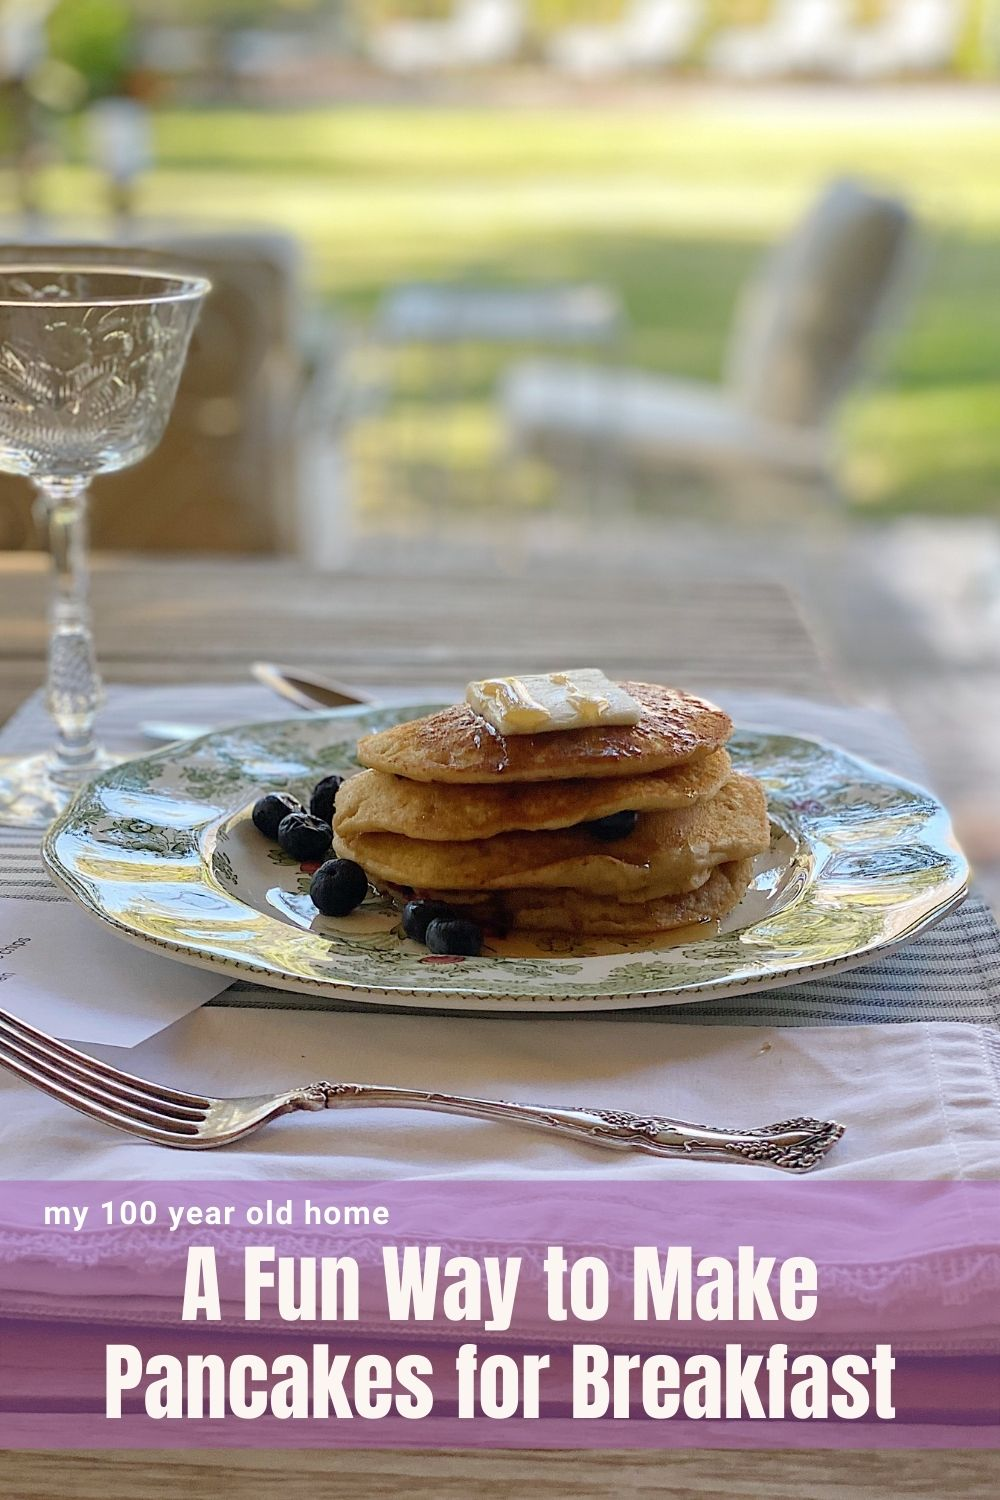 We love to enjoy pancakes at our home but all five of us like something different! I can't wait to share my fun idea to serve pancakes for breakfast to our entire family.